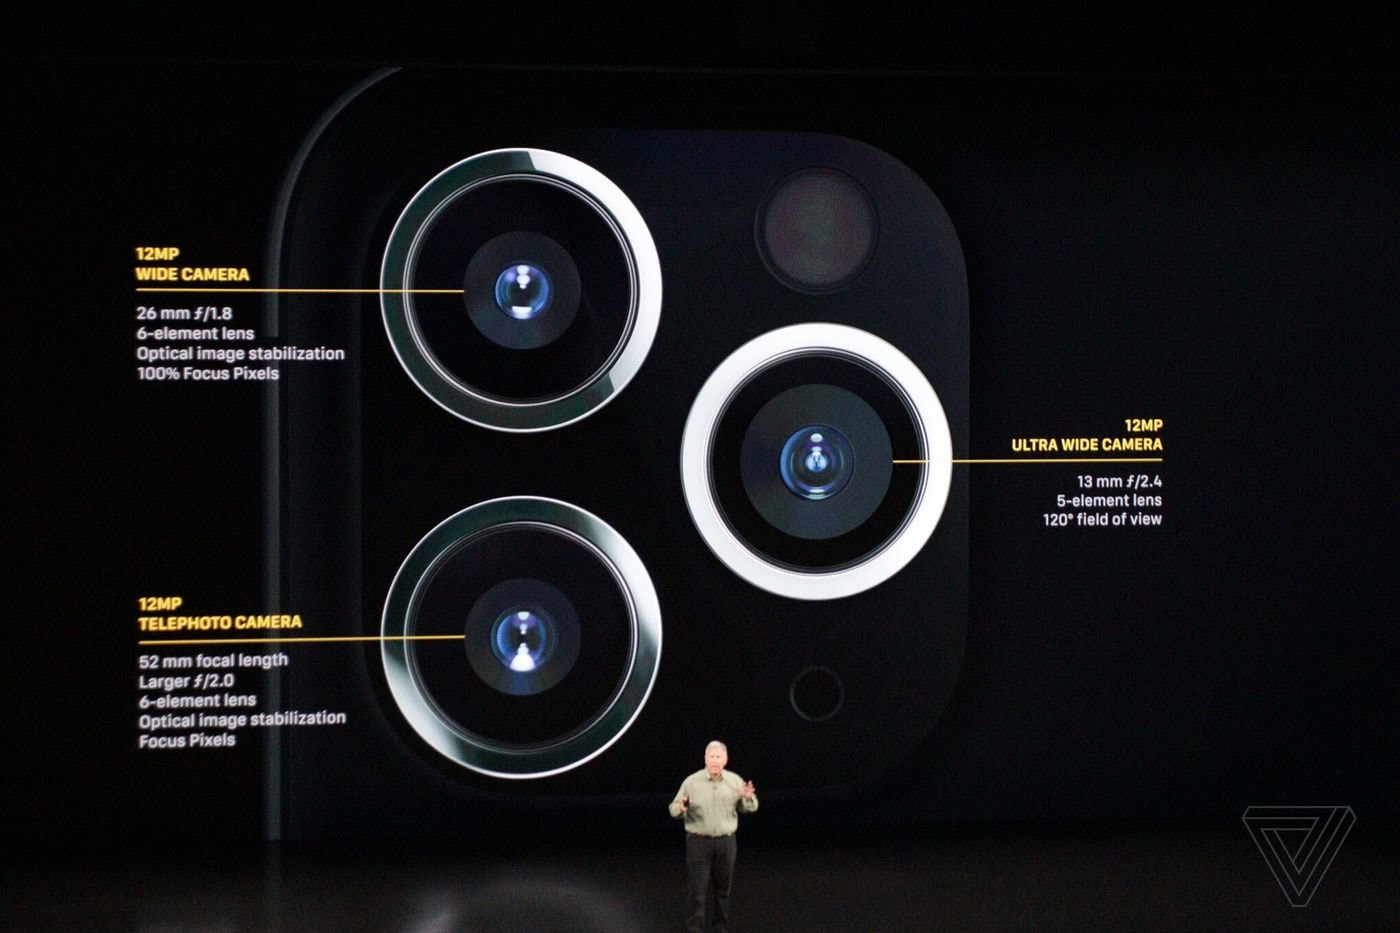 iPhone 11 Pro and iPhone 11 Pro Max: Release Date, Specs and Price